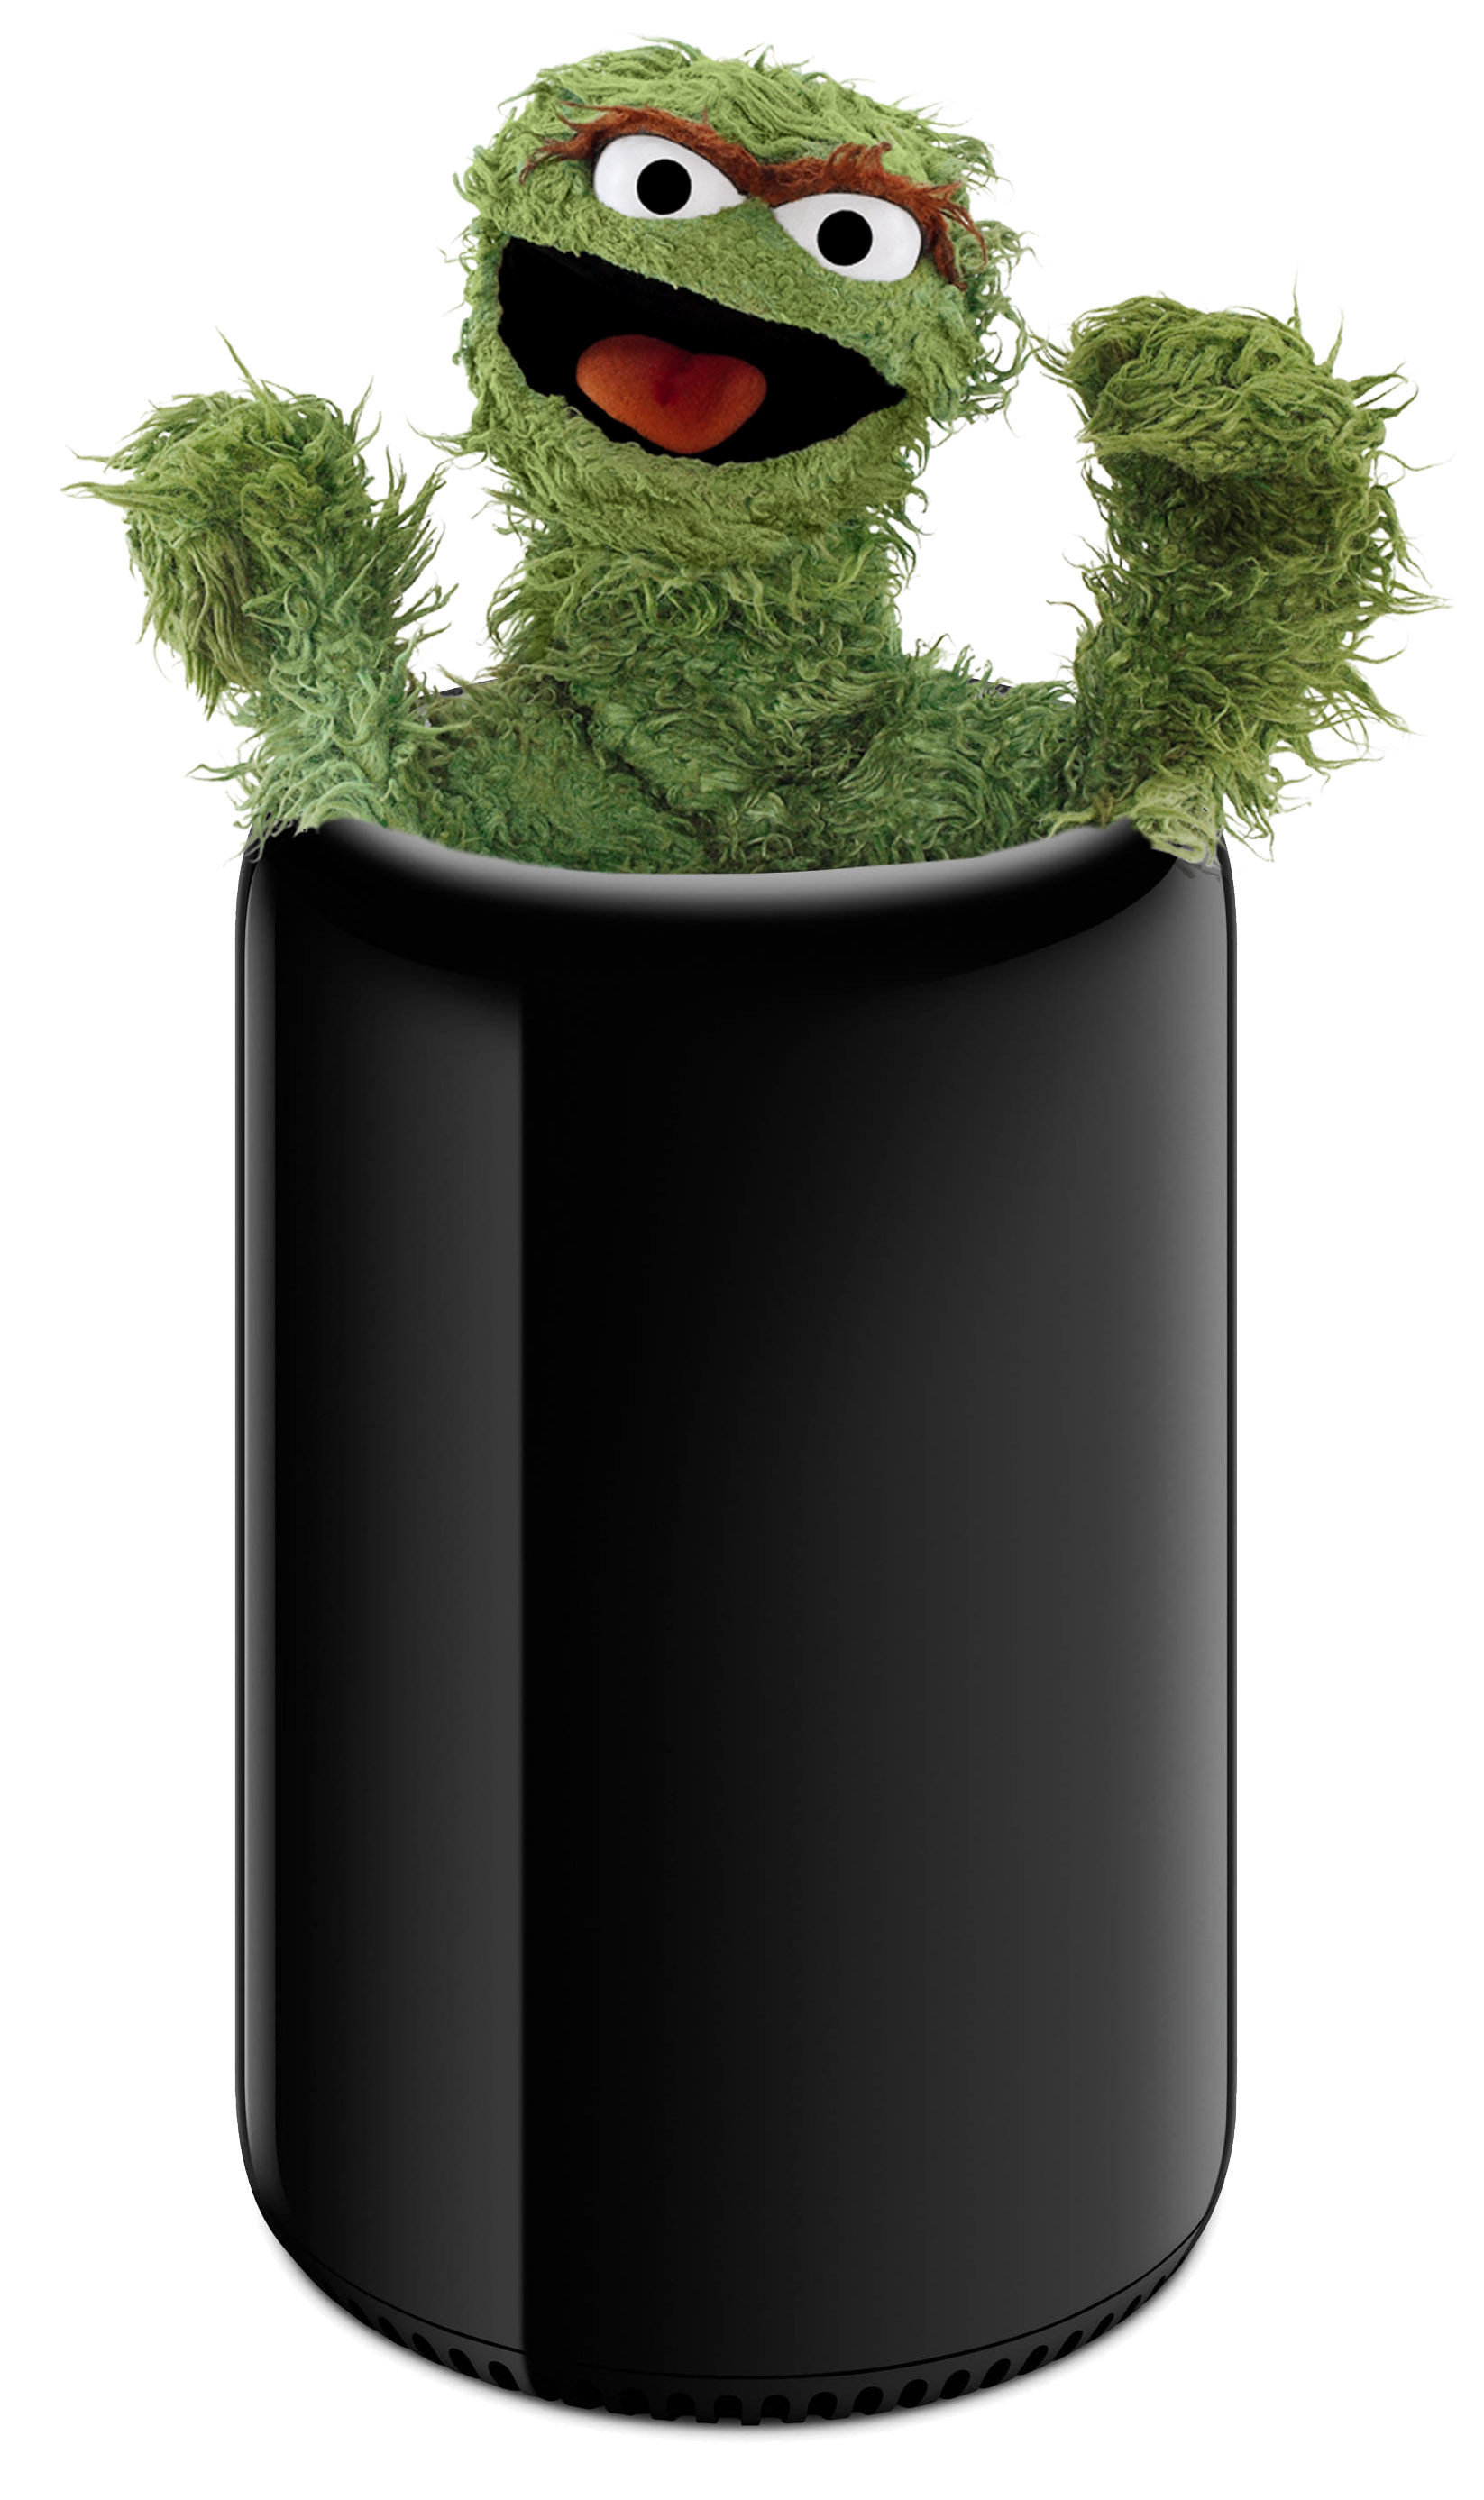 Mac Pro 2013 is Oscar's home